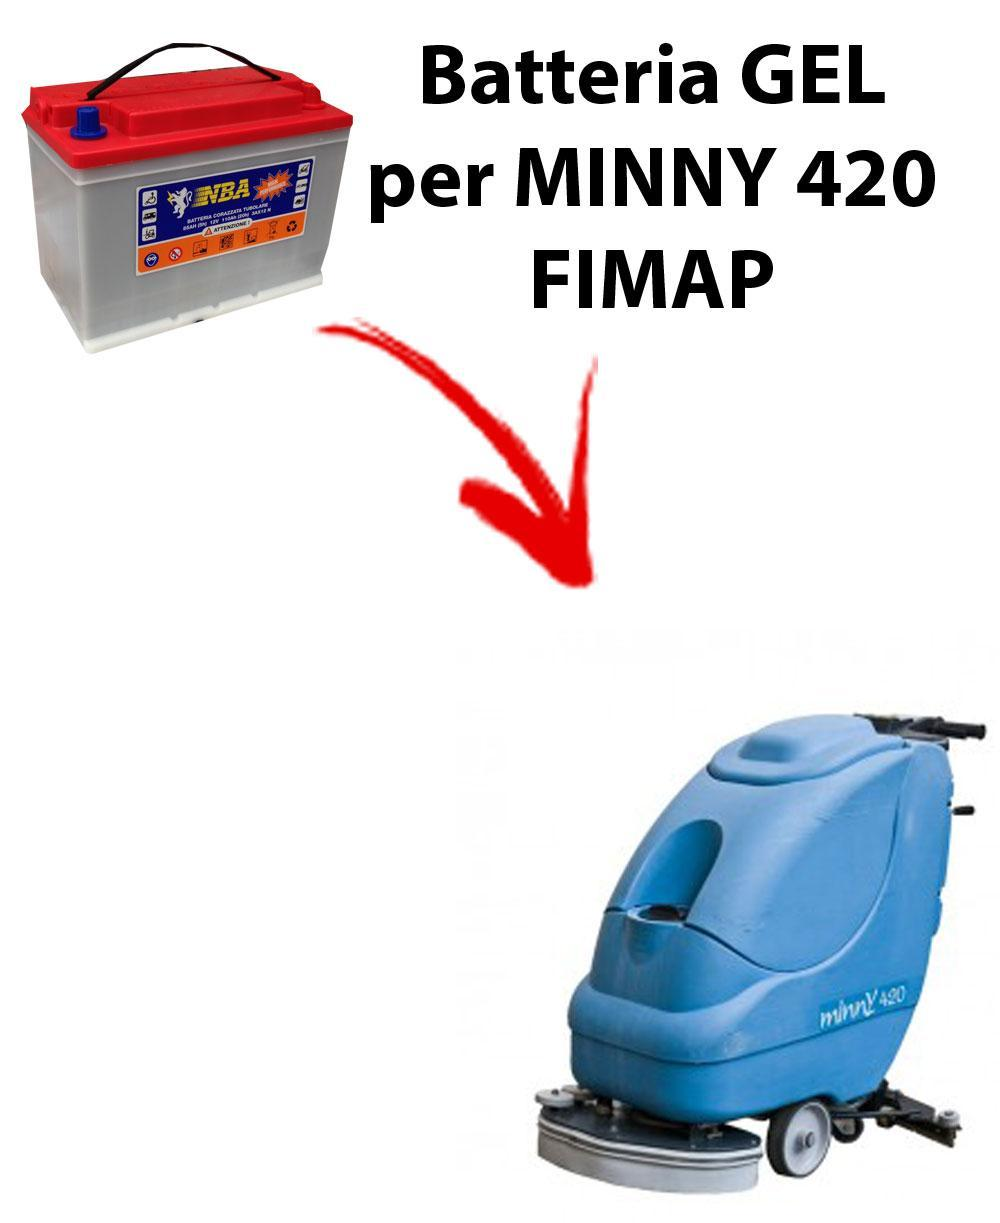 Battery PIOMBO for MINNY 420 scrubber dryer FIMAP